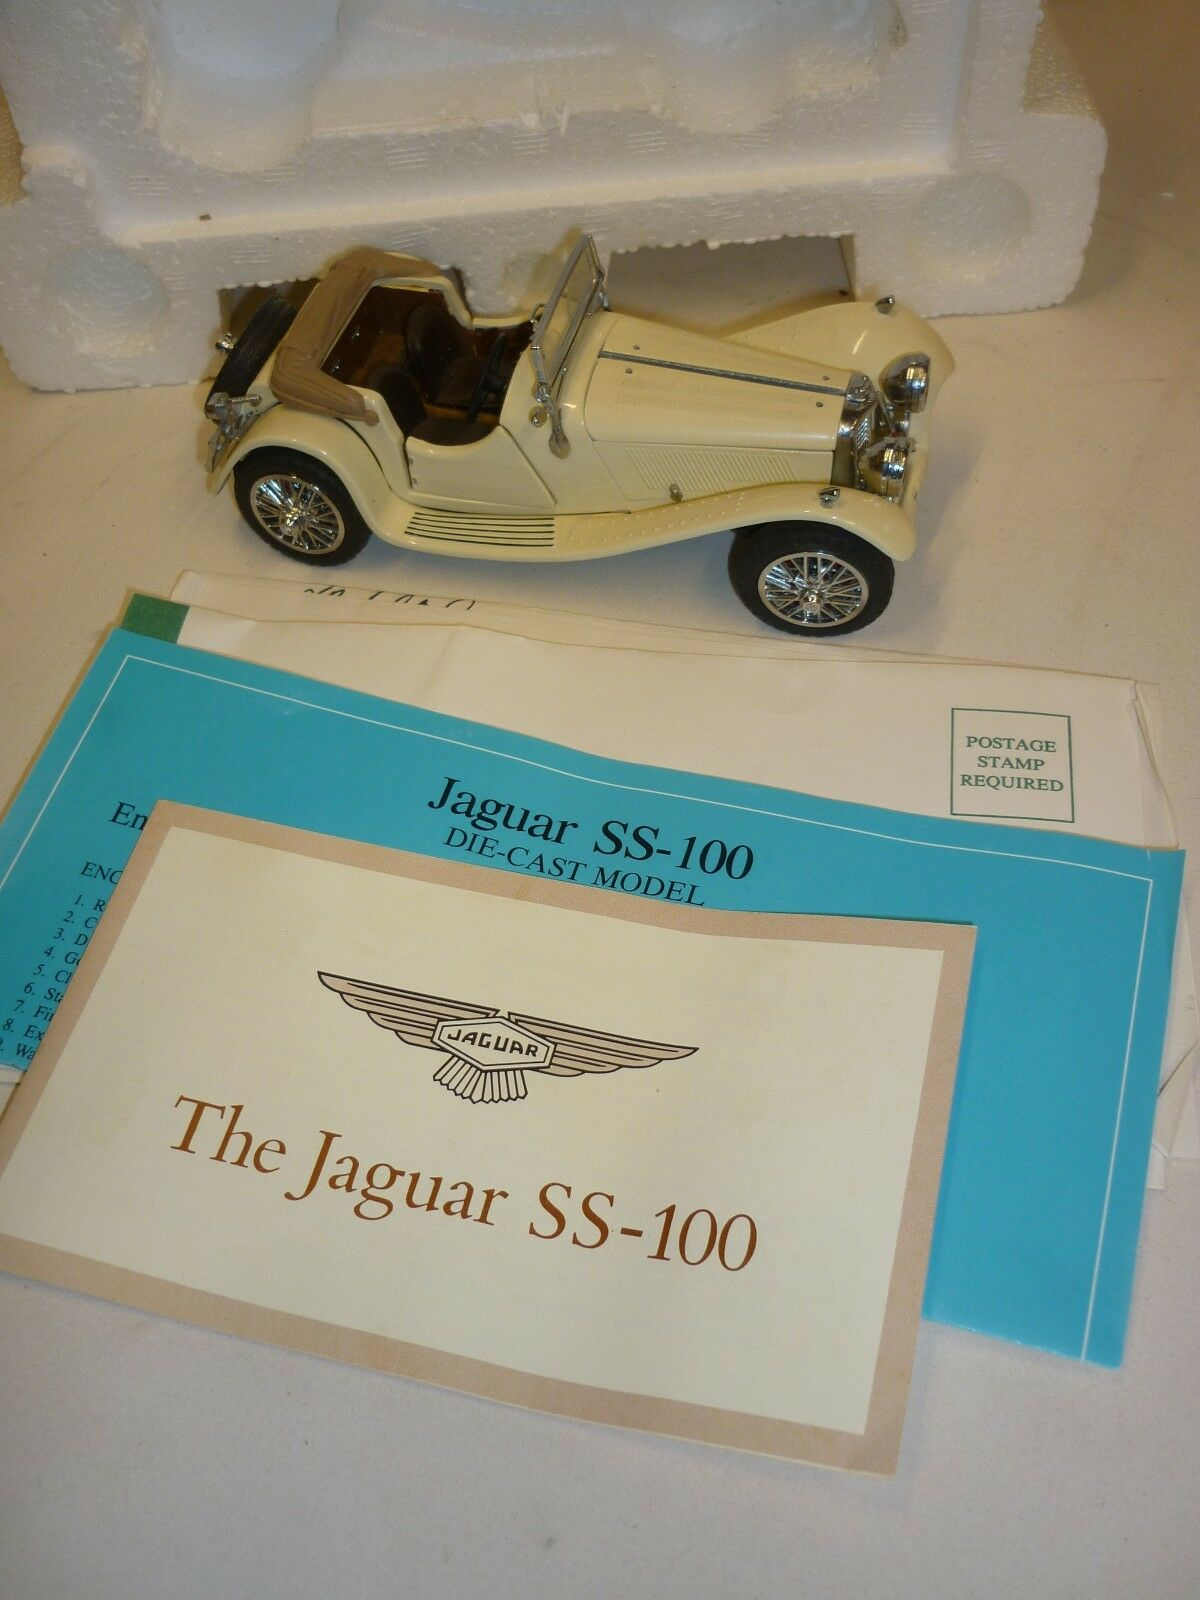 Un Franklin Comme neuf scale model voiture 1938 JAGUAR SS100. Boxed & papiers